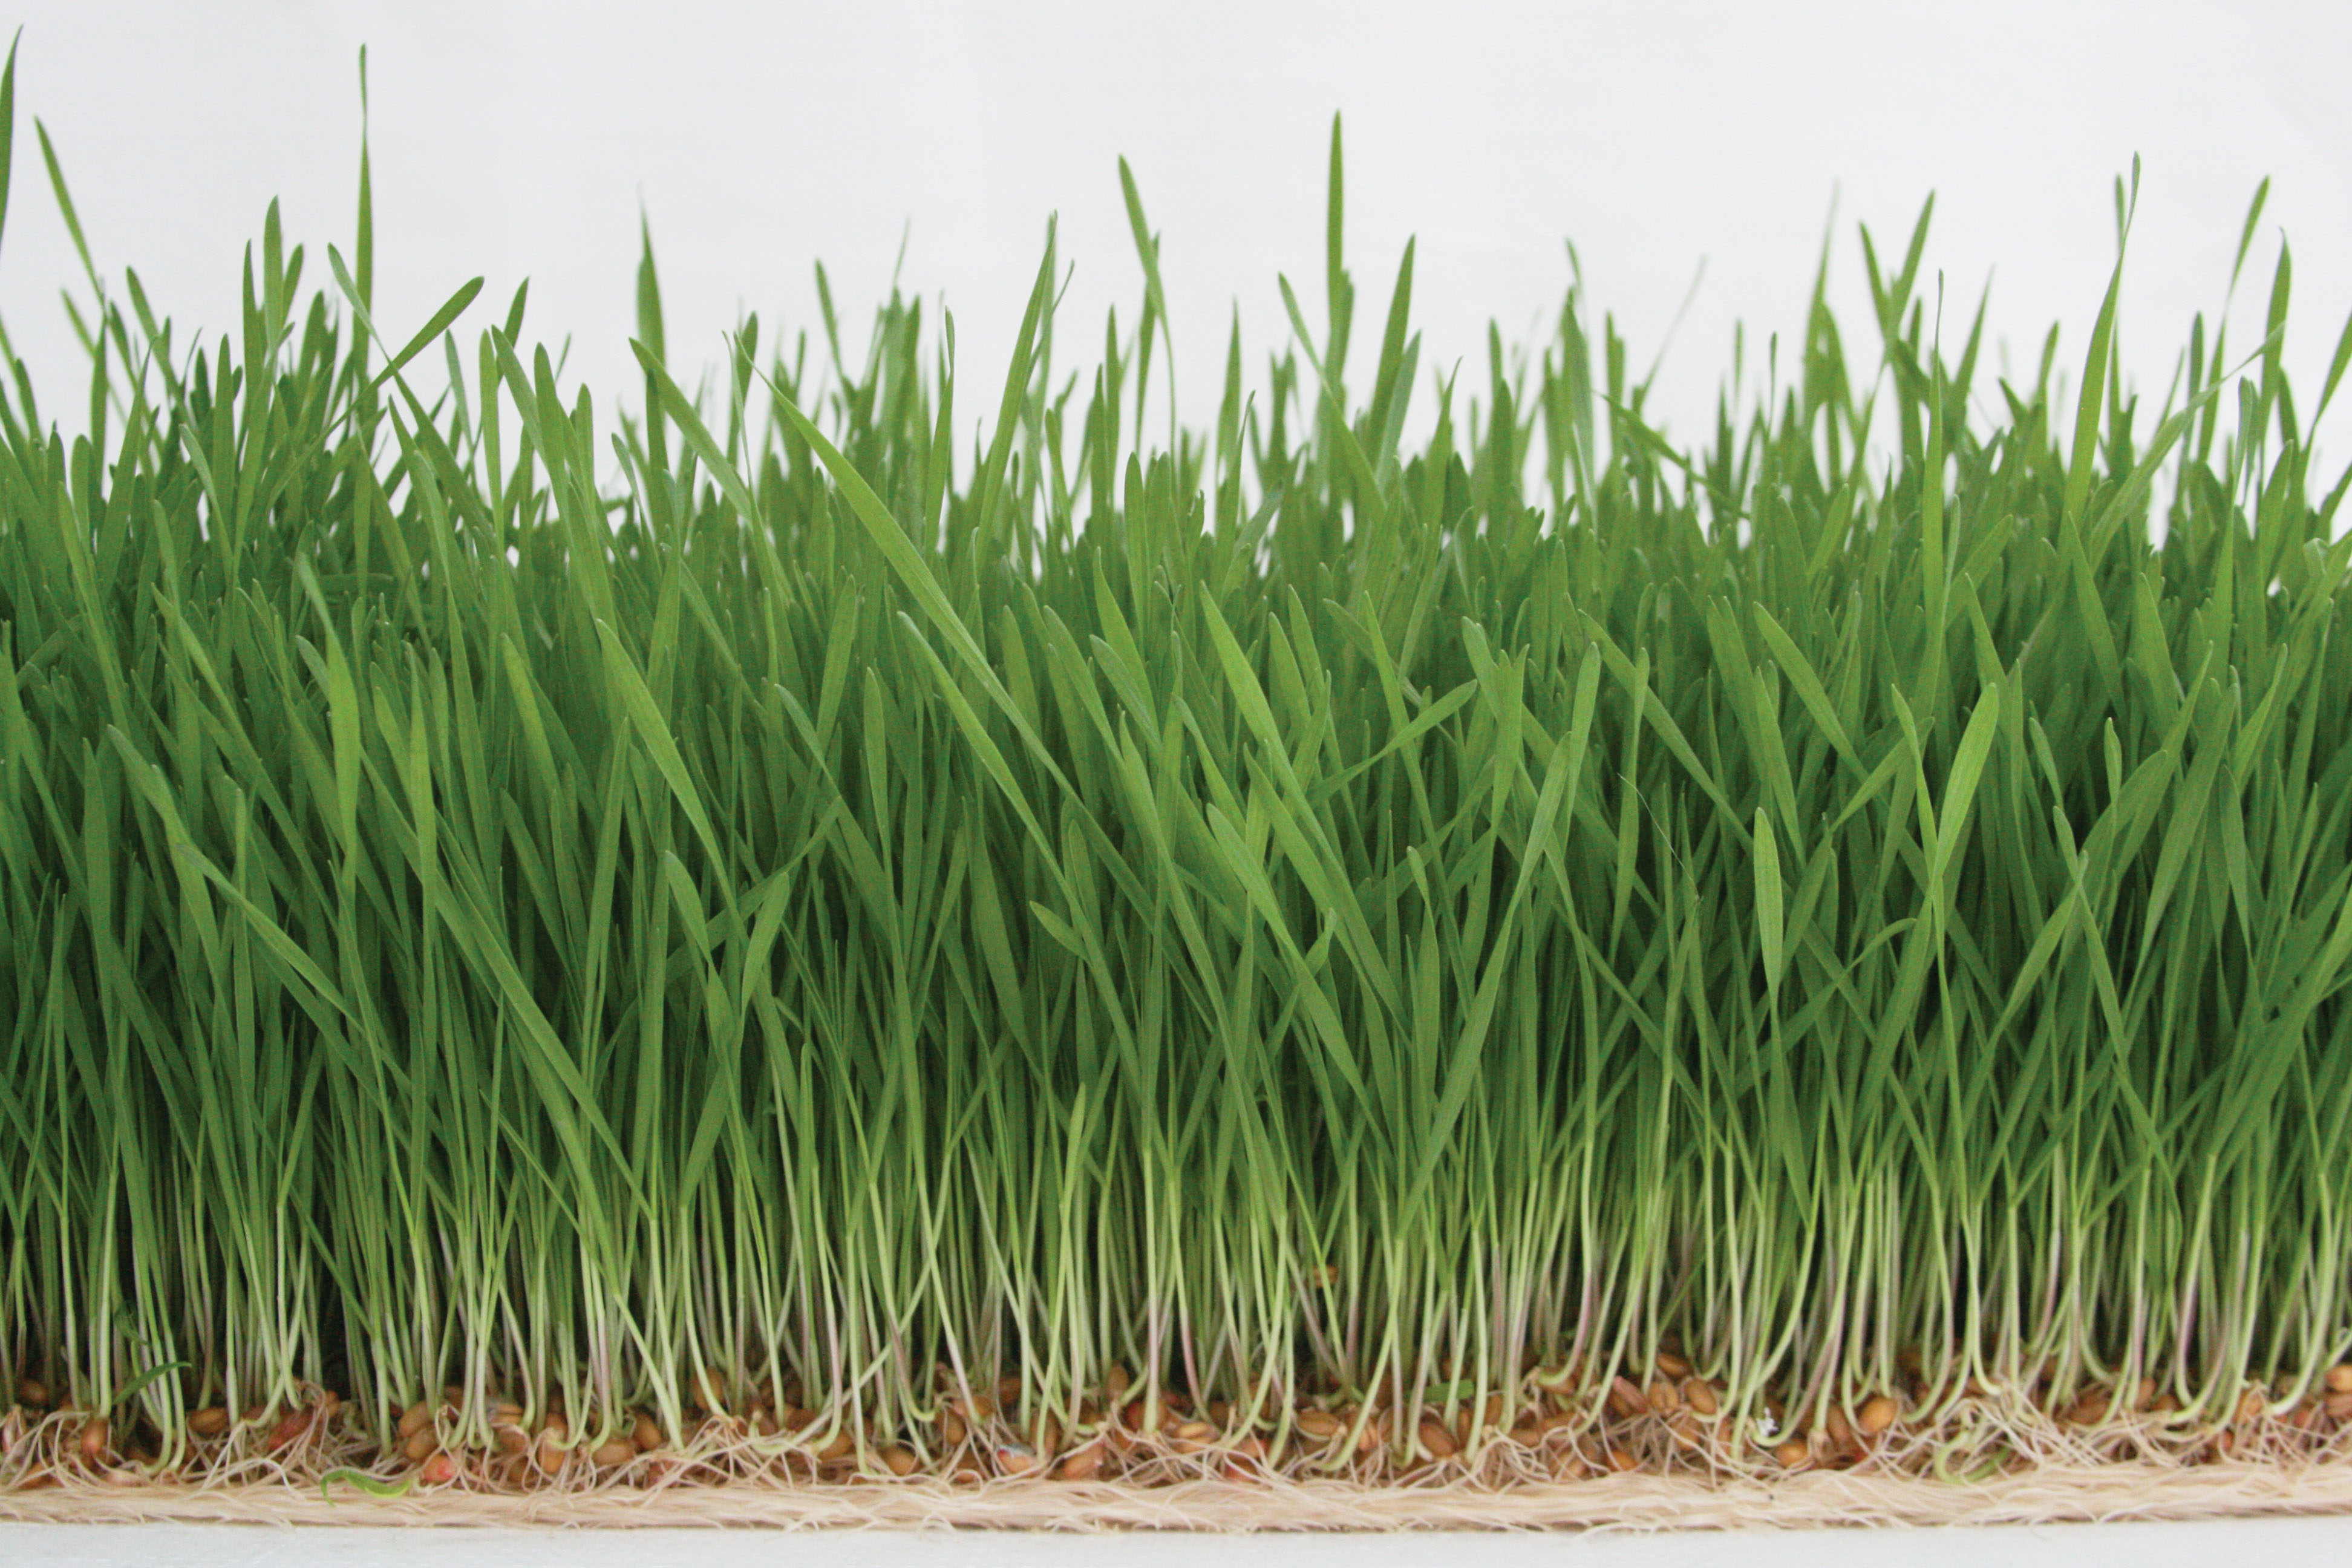 images What You Need to Know About Grass Allergies